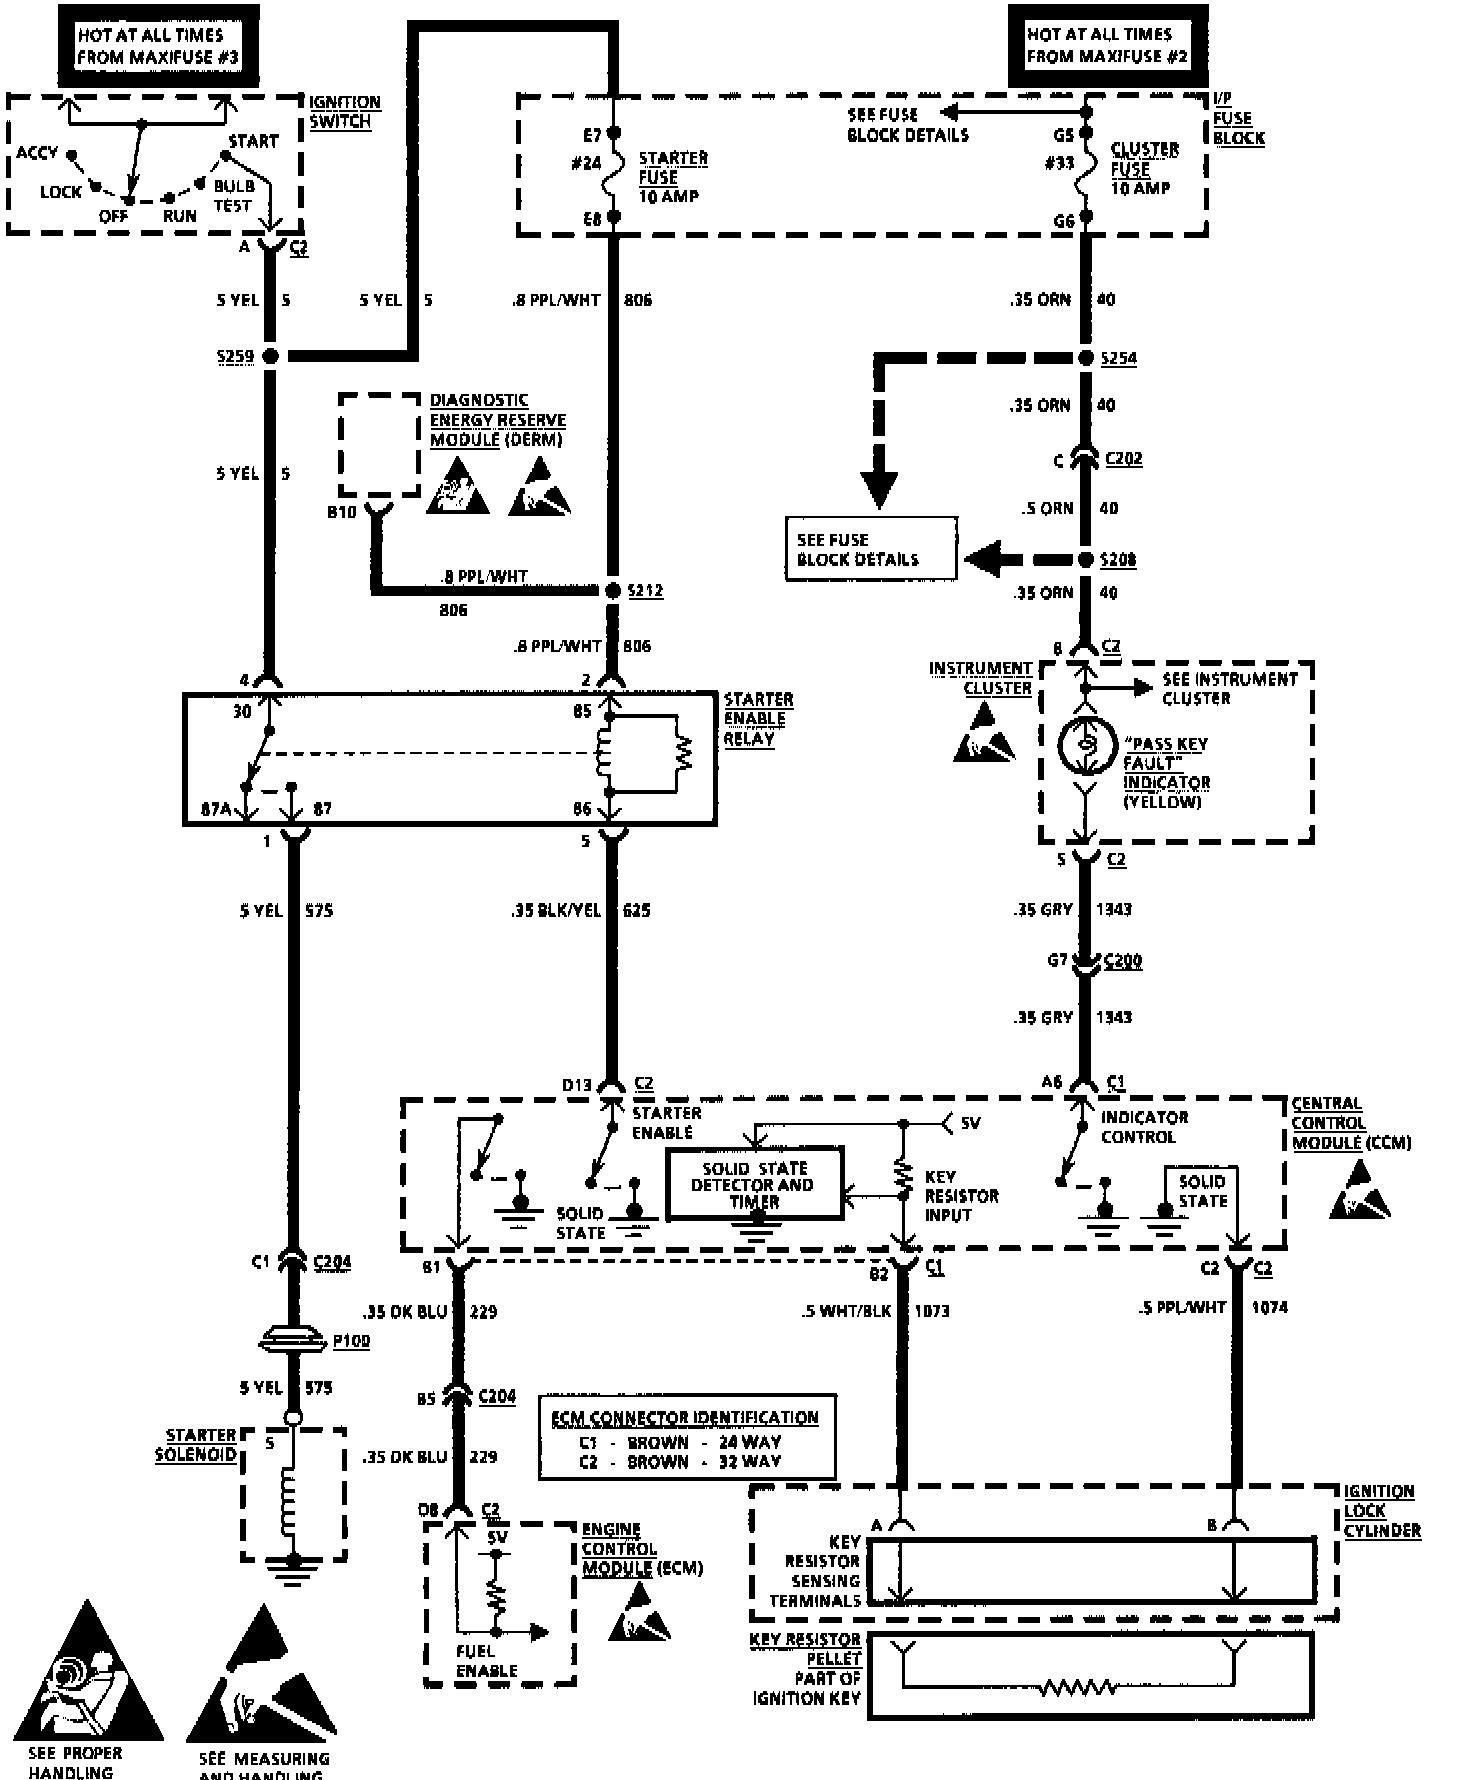 DIAGRAM] 1990 Bounder Wiring Diagram FULL Version HD Quality Wiring Diagram  - STIFFDIAGRAMS.SANITACALABRIA.IT